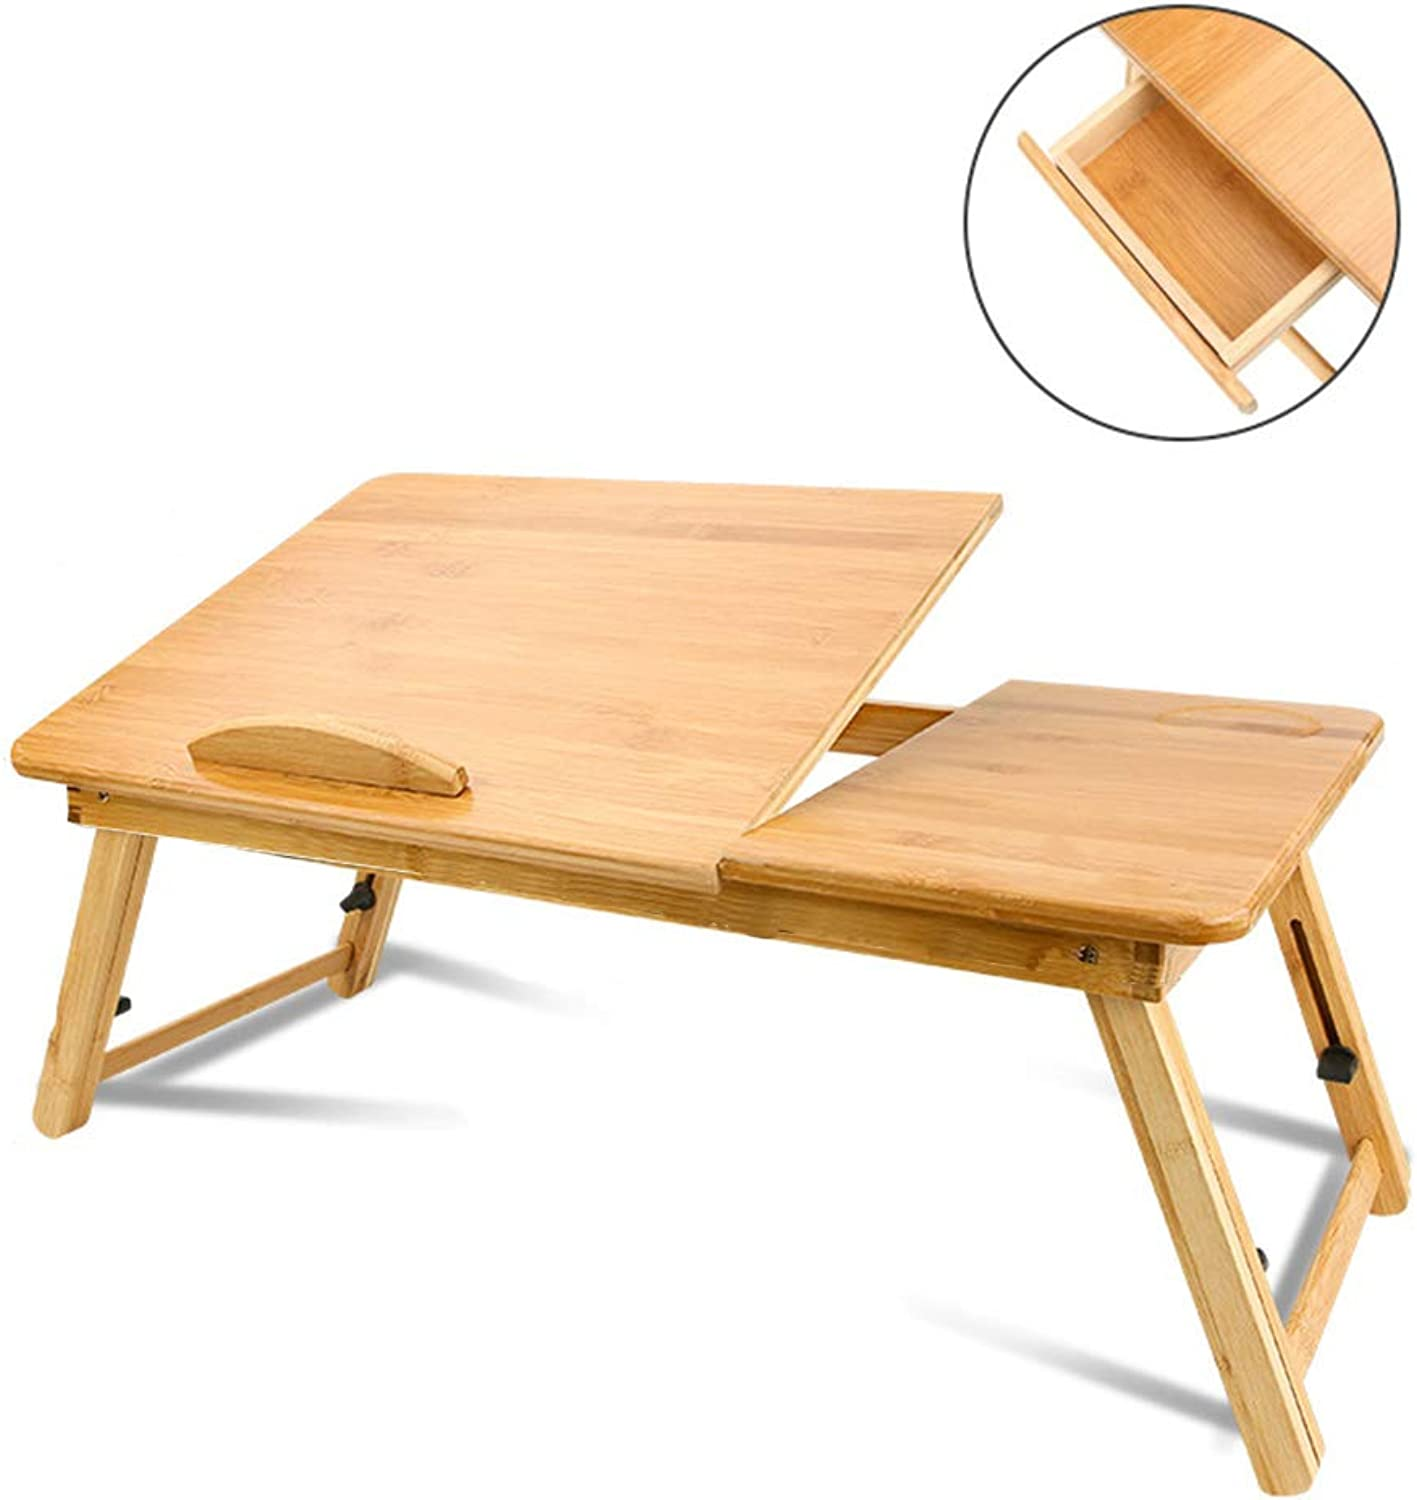 CHANG-dq Multi-function Folding Table, Small Table On The Bed Small Medium-sized Large Lift Table Small Table With Drawers Household table (color   A1)